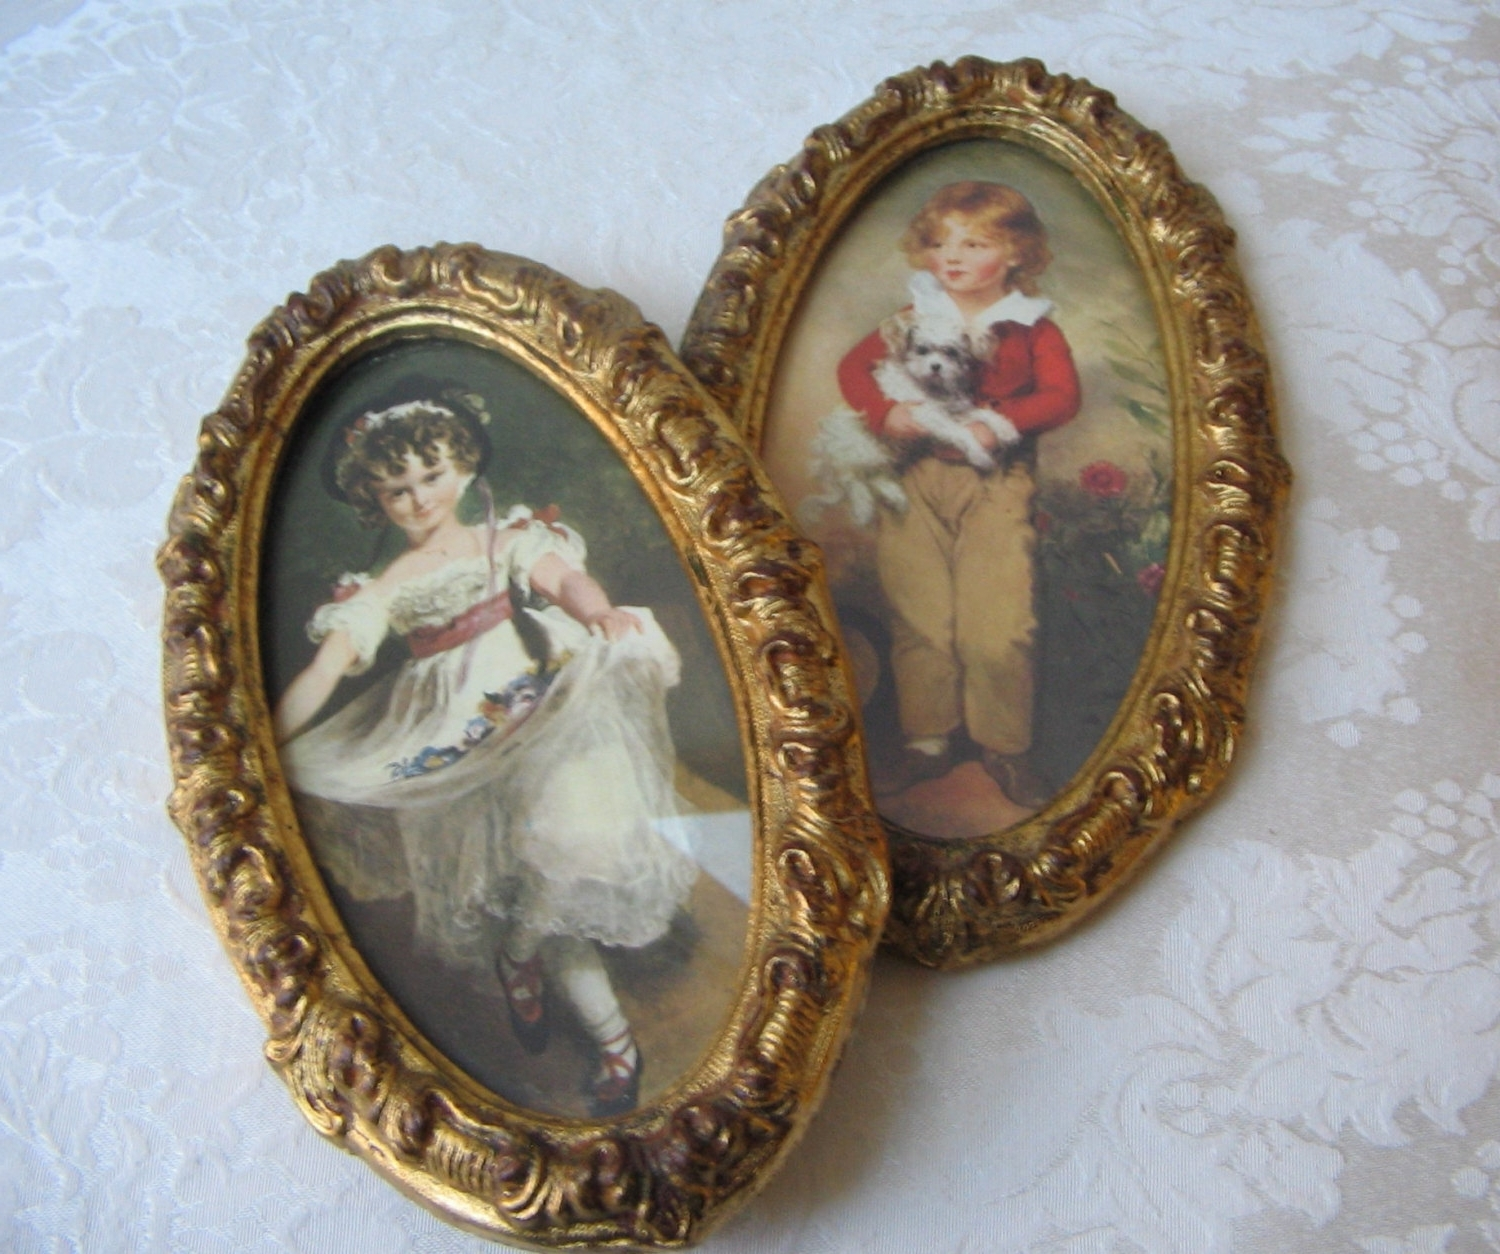 Vintage Italian Wall Art Within Well Known Vintage Florentine Prints In Ornate Gold Italian Frames Of Boy (View 14 of 15)